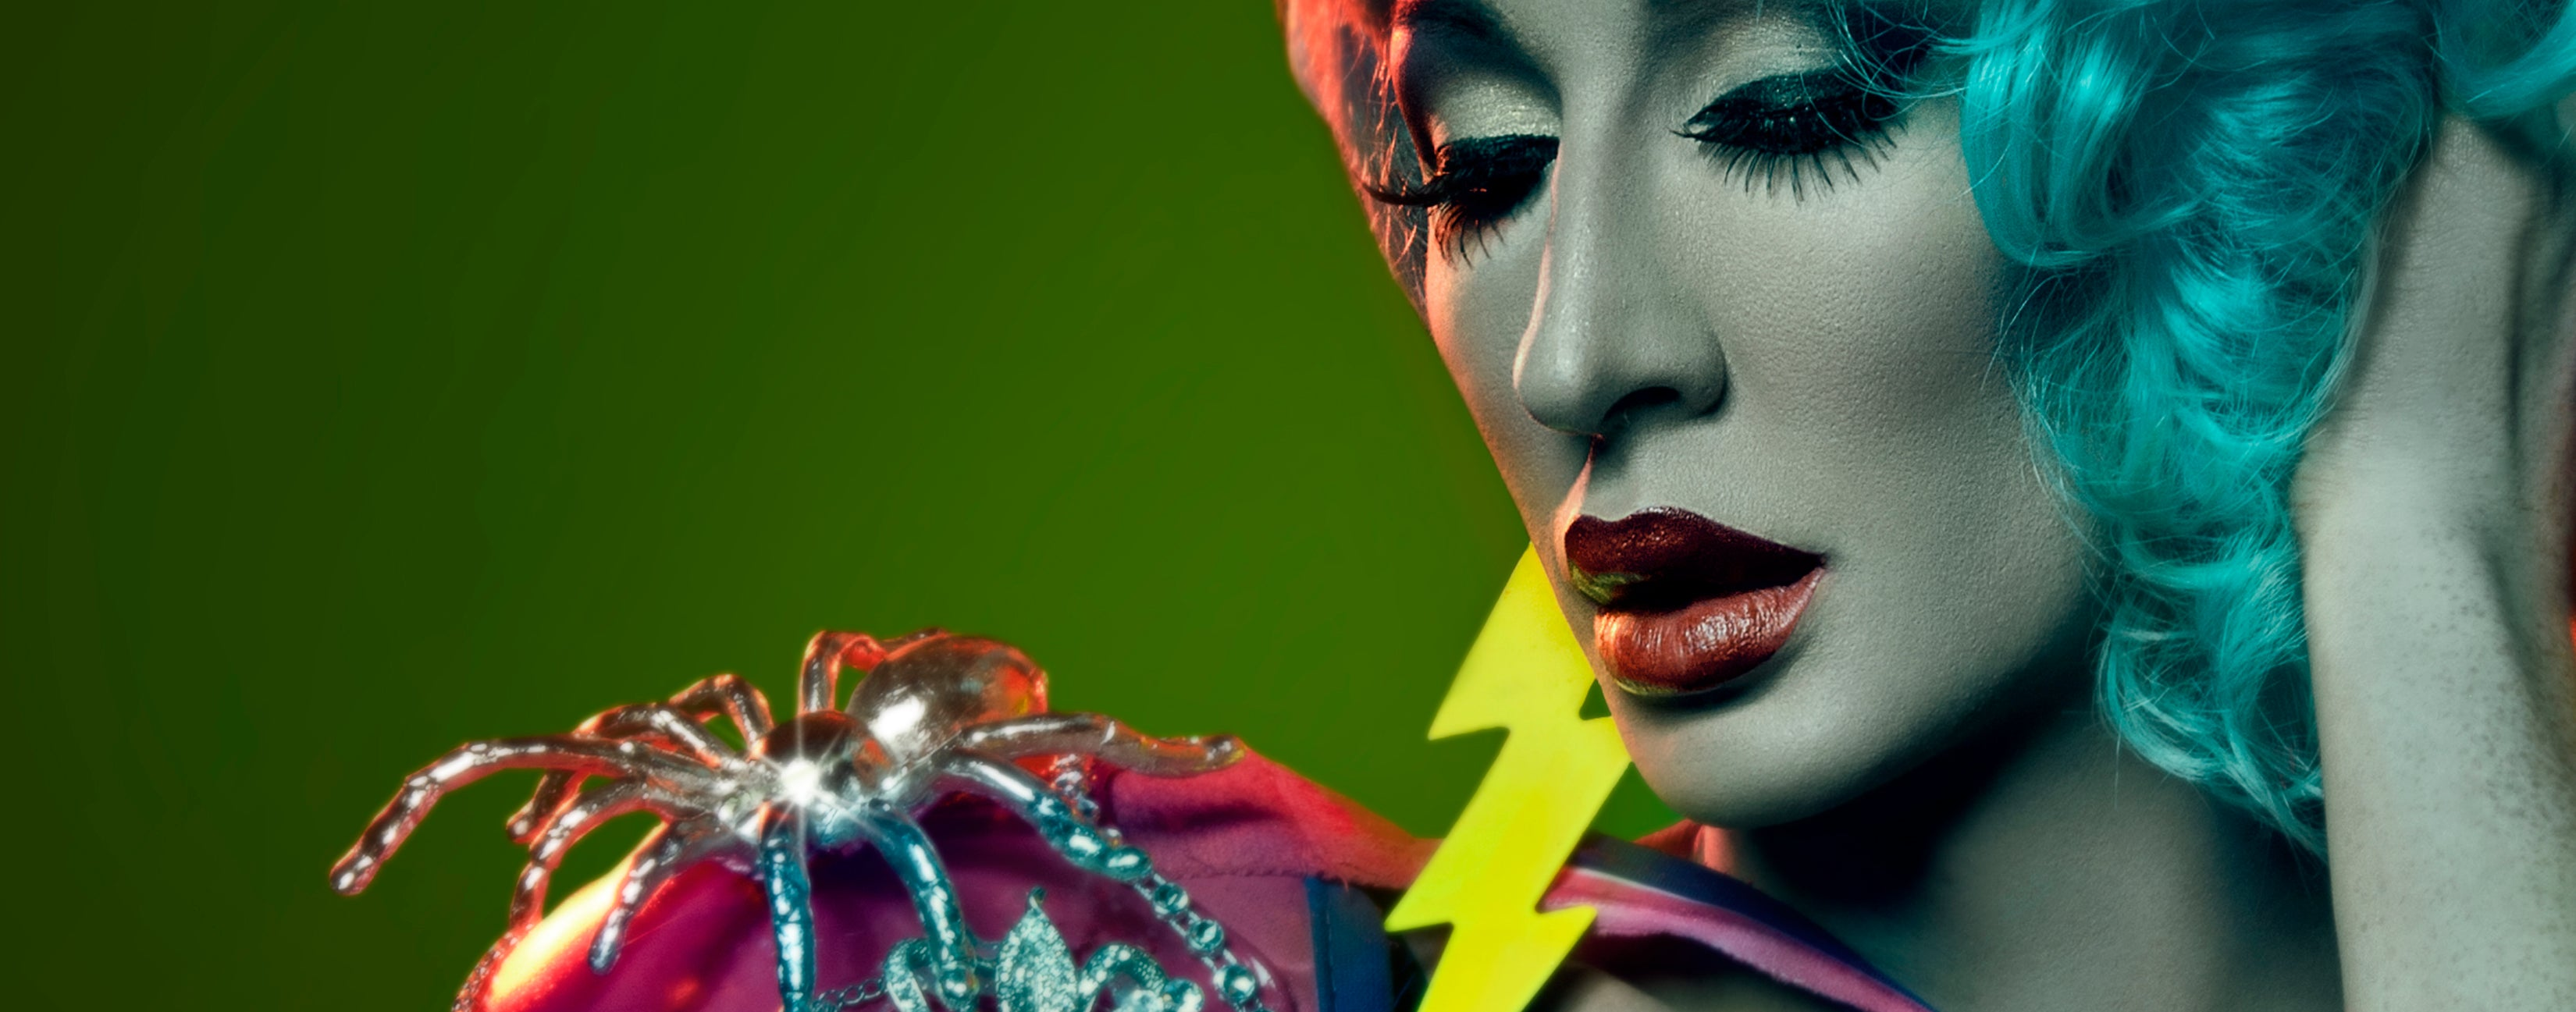 Listen To DETOX On Spotify